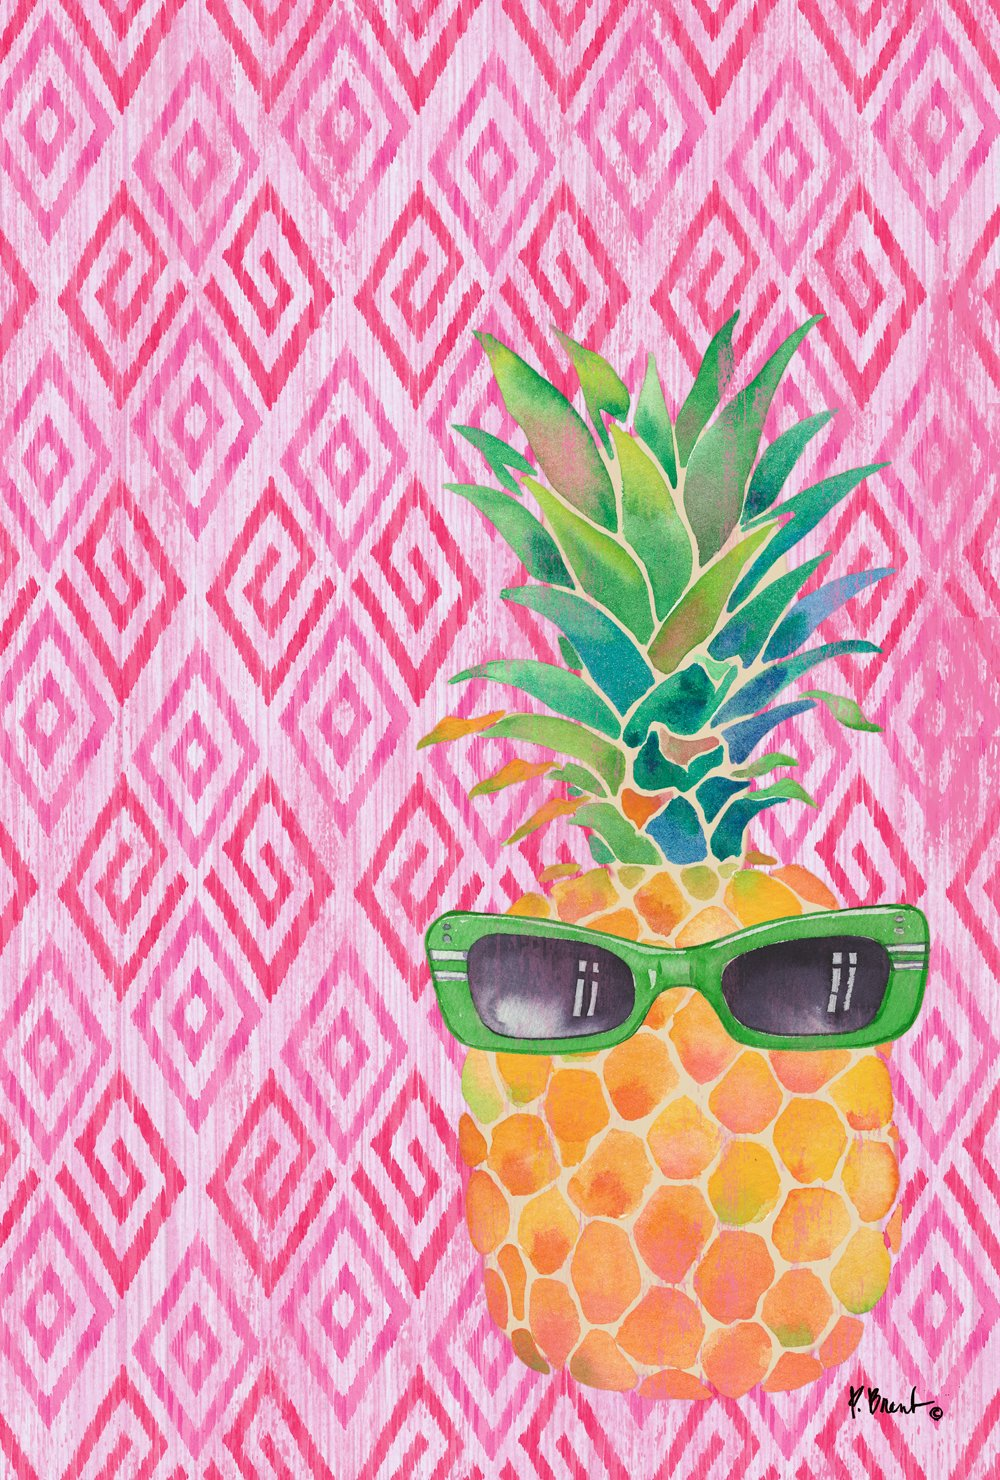 Toland Home Garden Summer Shades 28 x 40 Inch Decorative Colorful Cool Pineapple Sunglasses House Flag